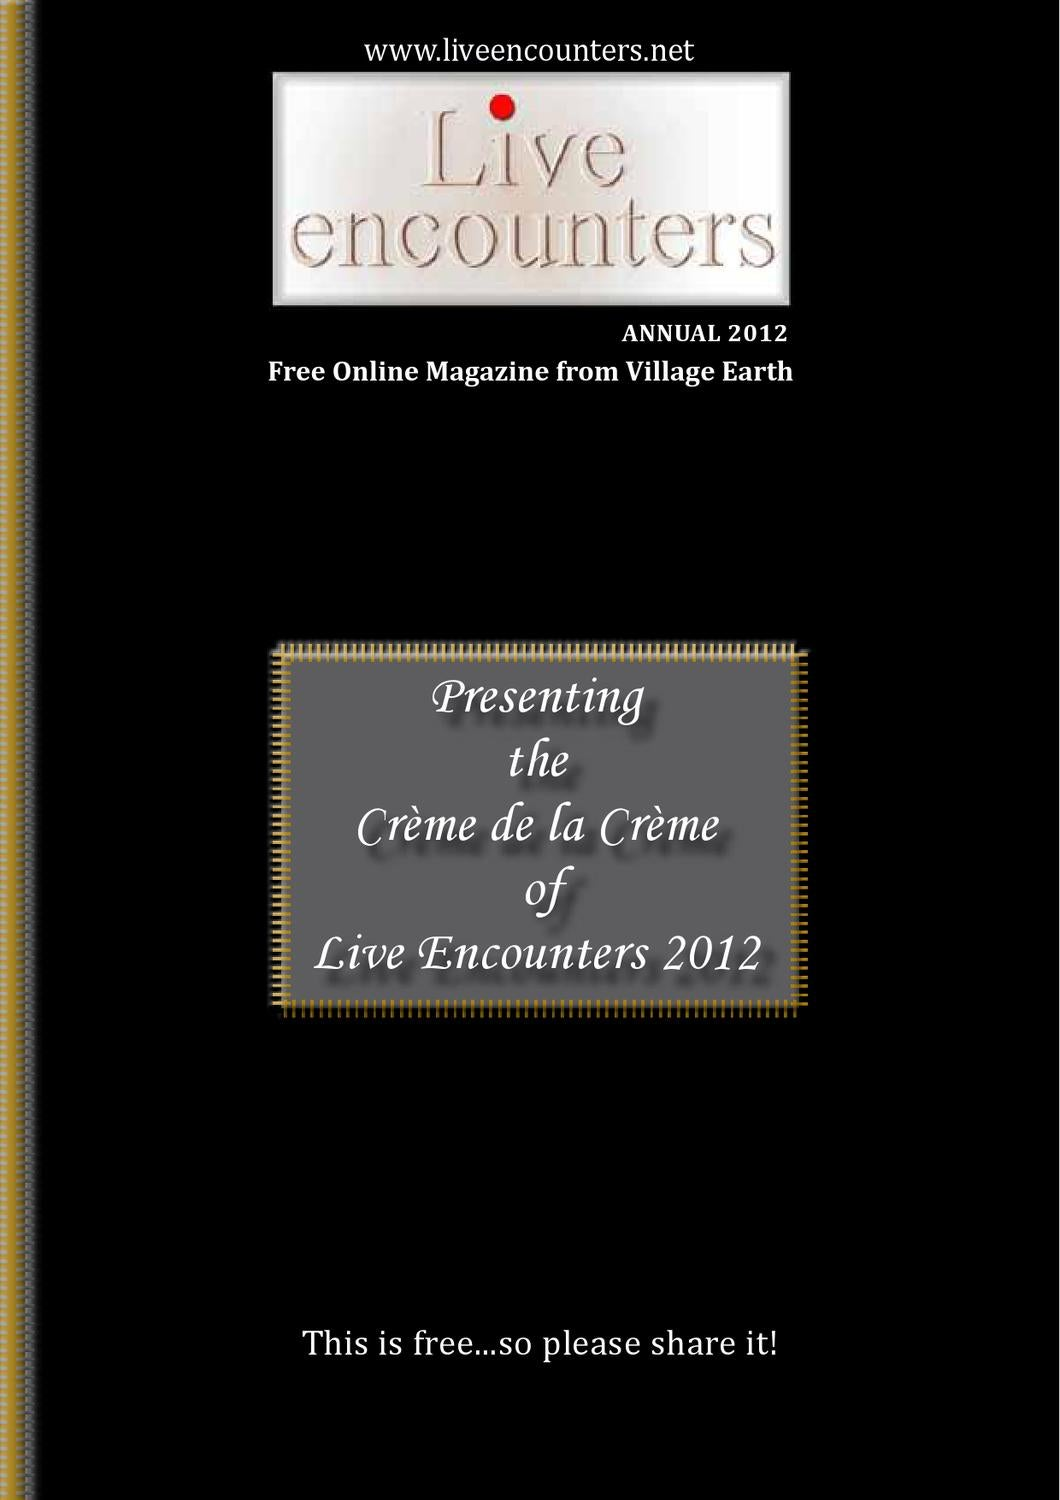 Live Encounters Annual 2012 by Live Encounters - issuu